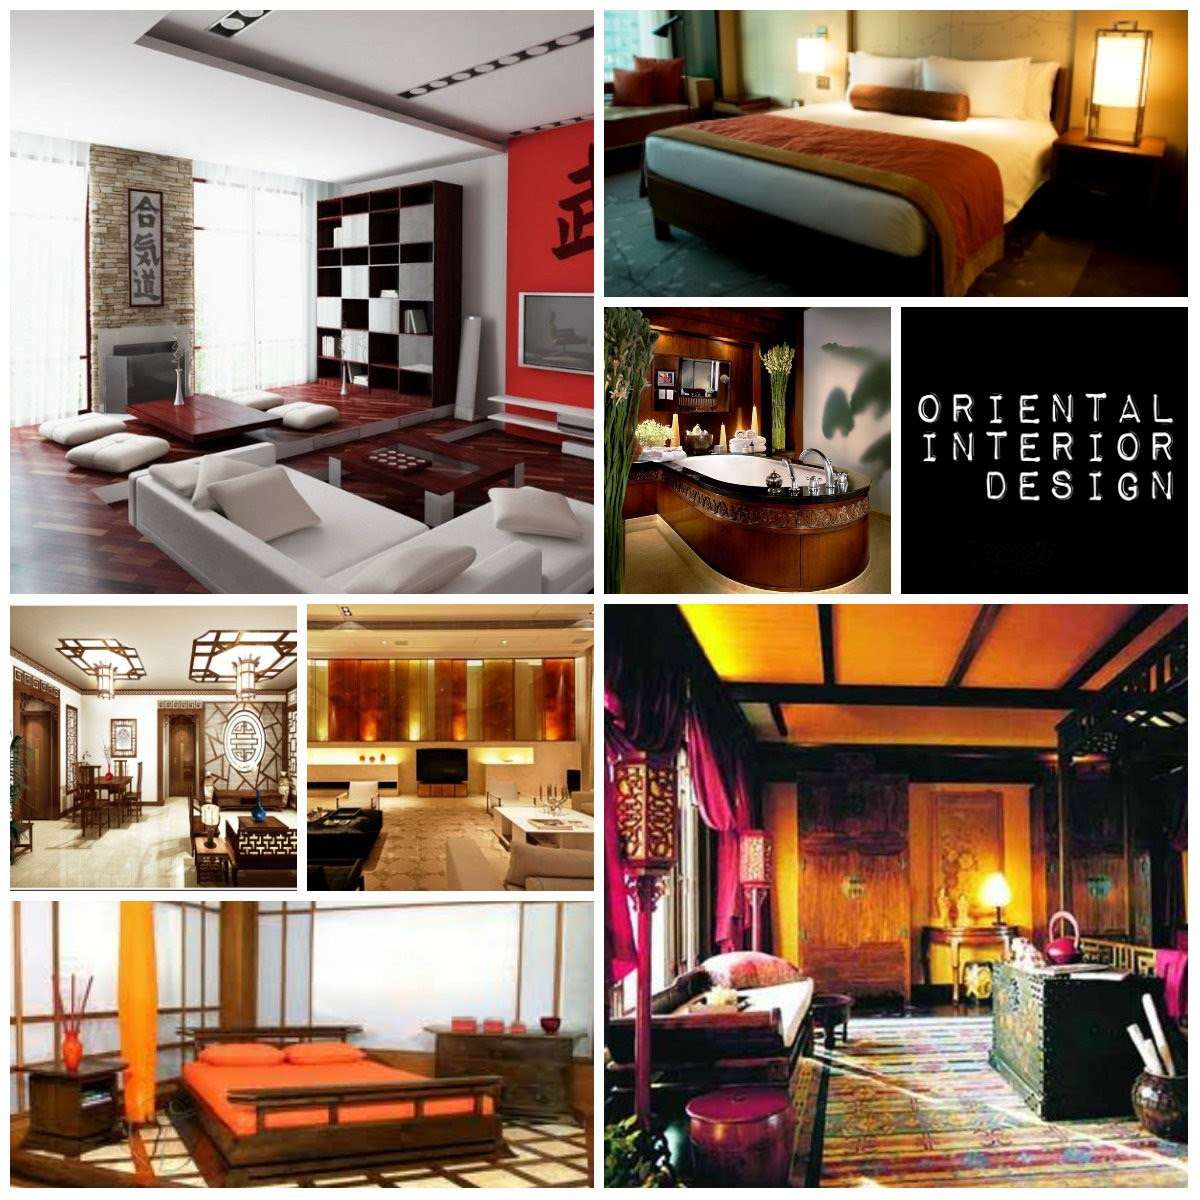 Different interior design styles research the world for Interior design styles photos